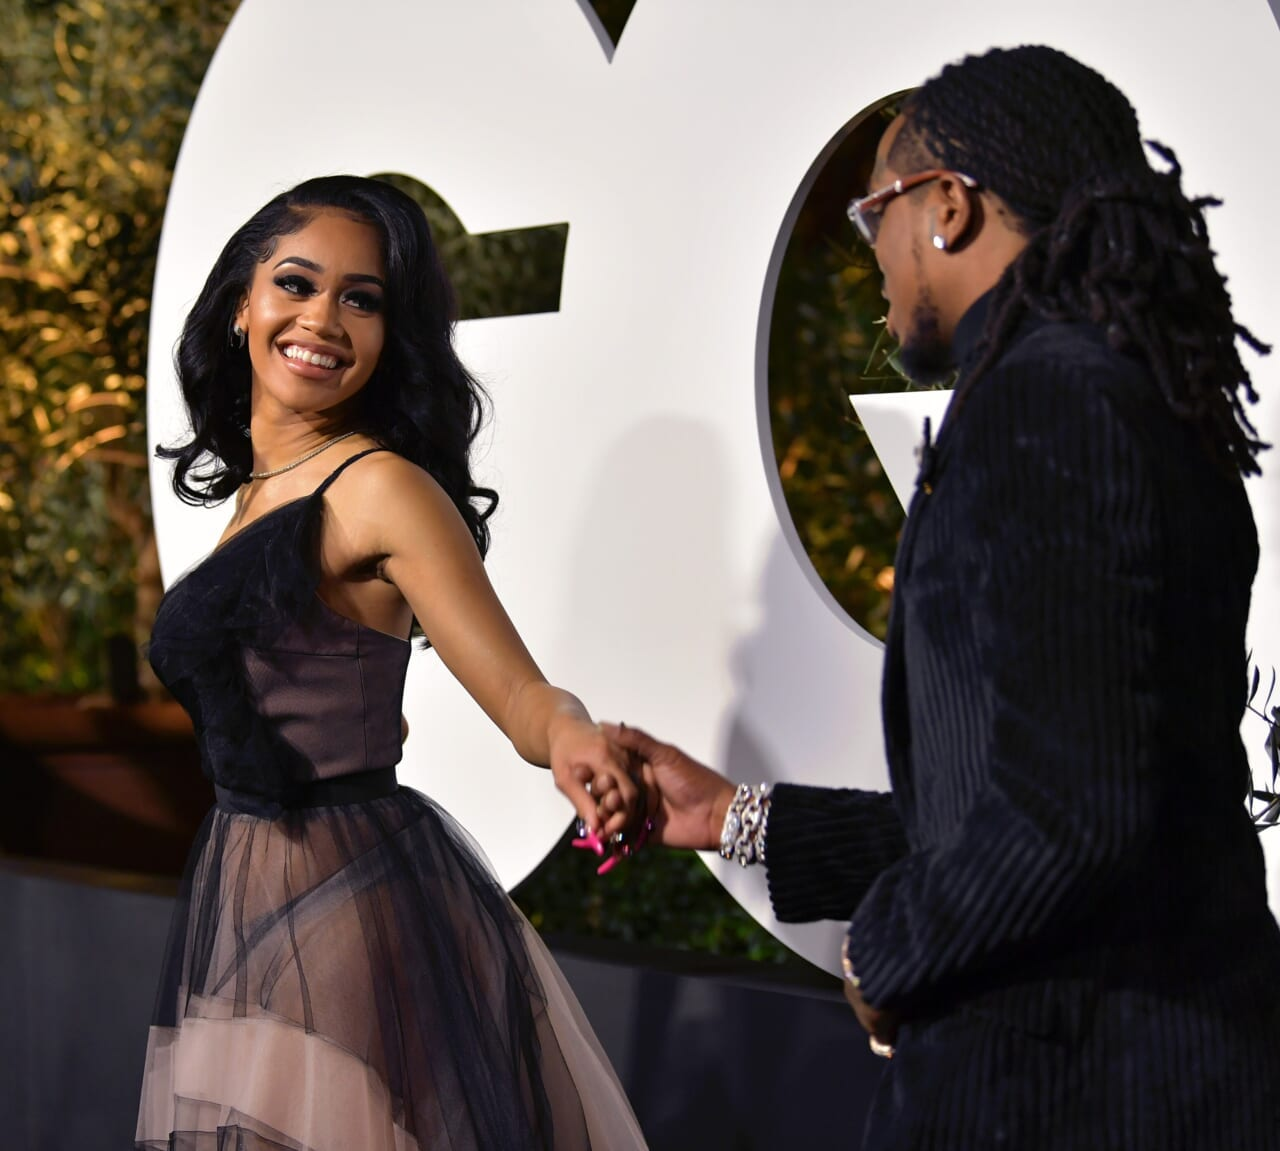 Saweetie says she knew Quavo loved her when he gave her his last piece of chicken